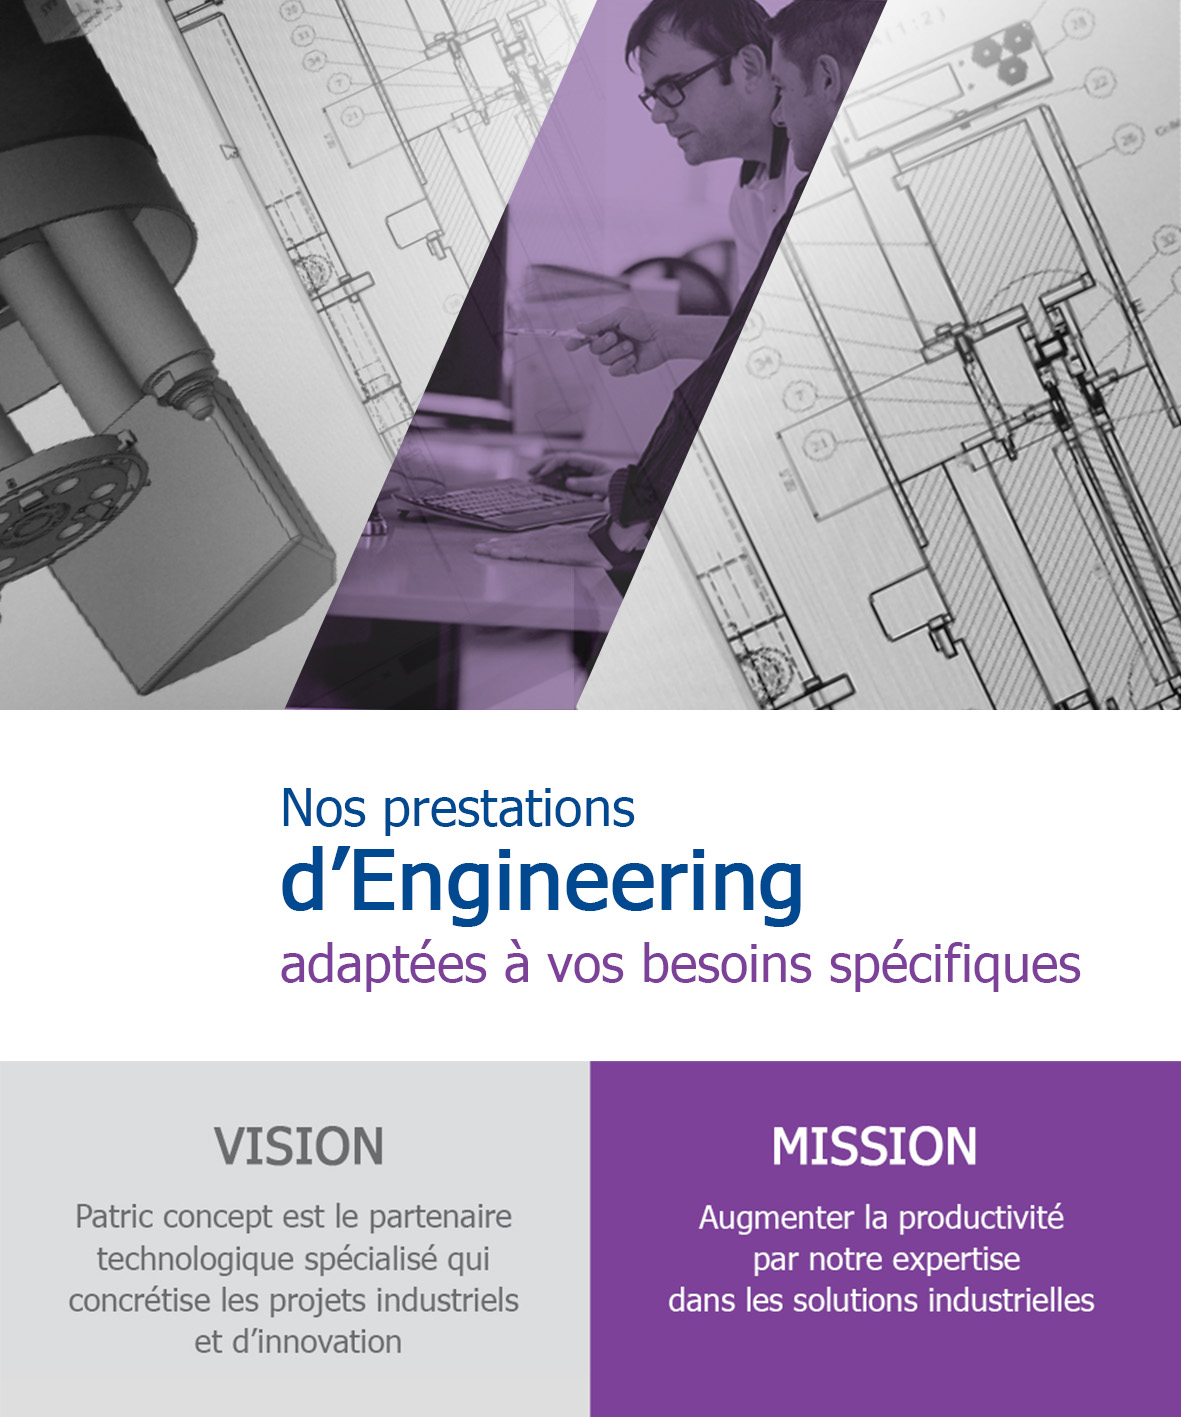 Services d'Engineering